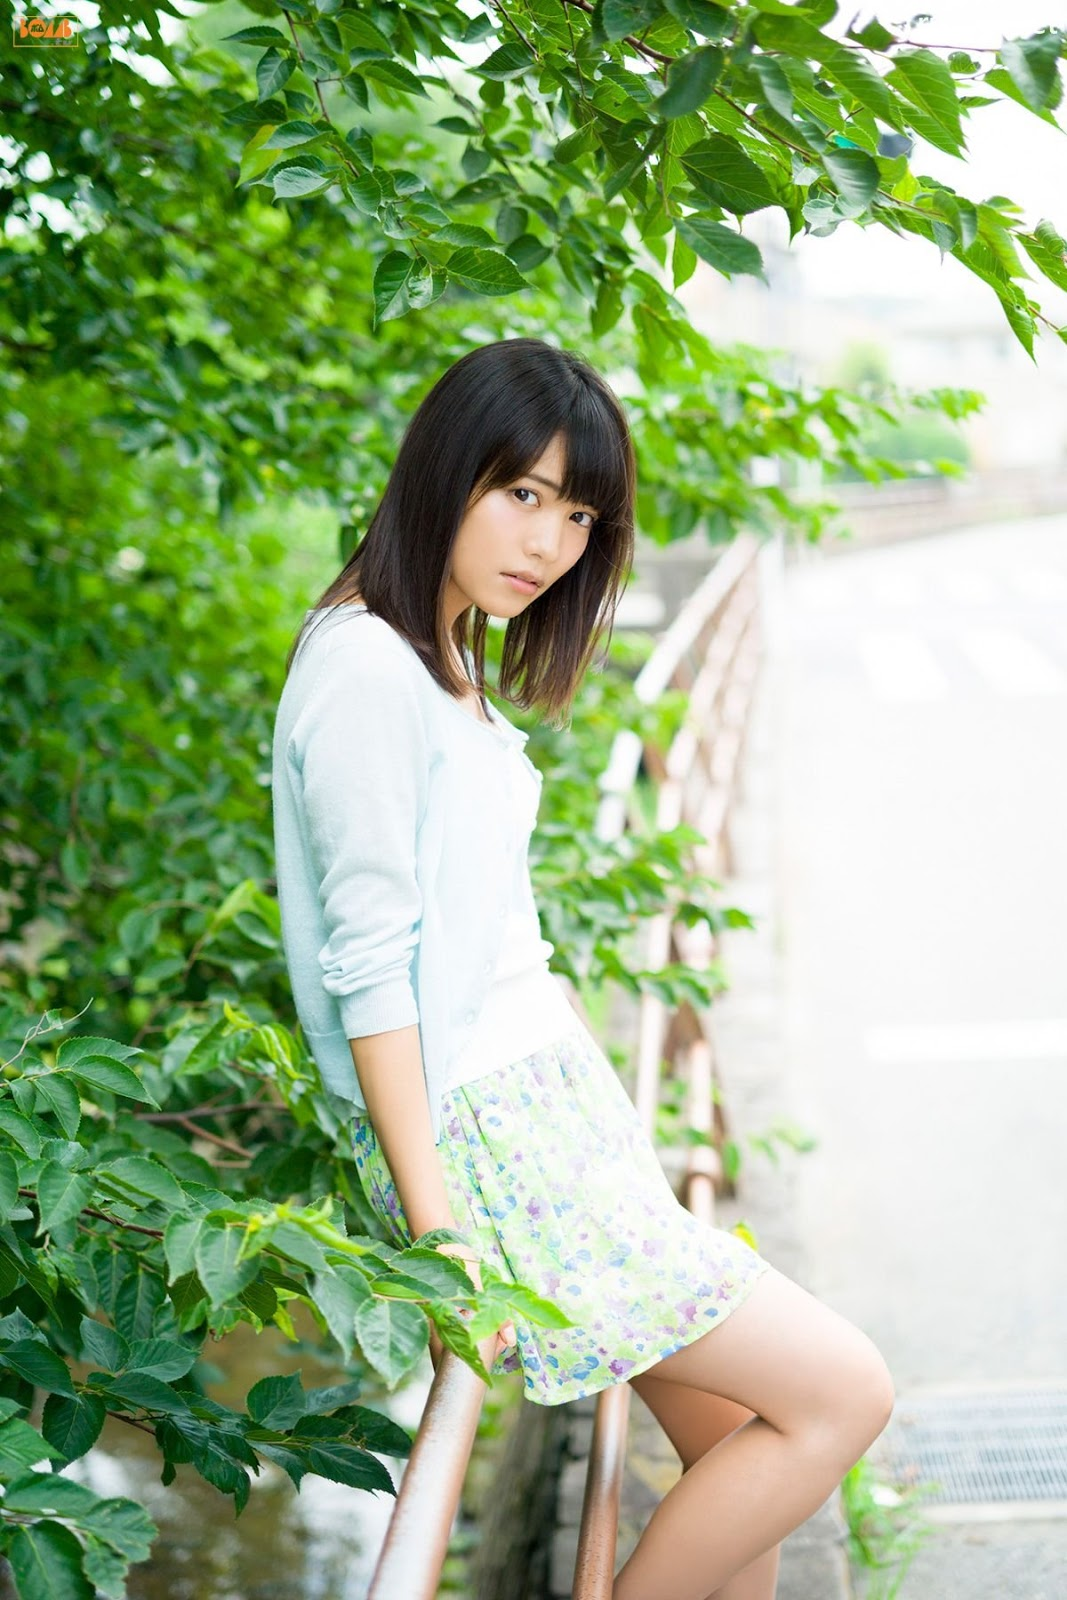 Image Japanese Model - Arisa Matsunaga - GRAVURE Channel Photo Jacket - TruePic.net - Picture-4